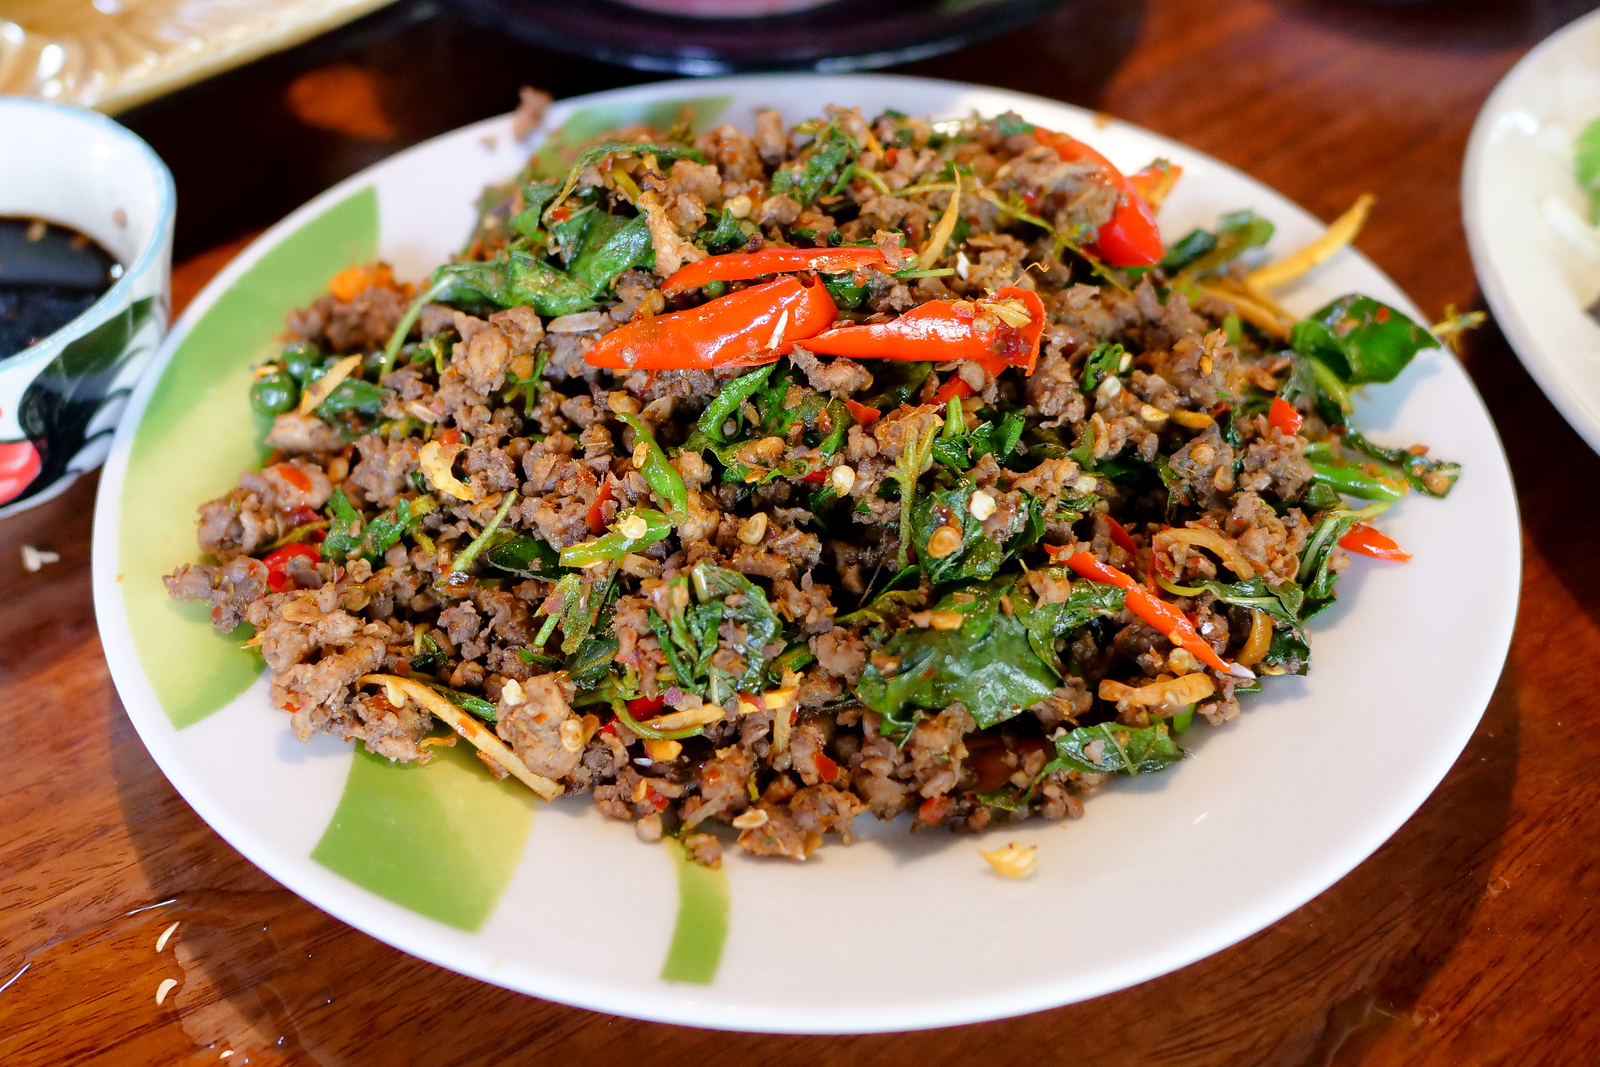 Pad Pet Nok is wonderfully spicy and fragrant